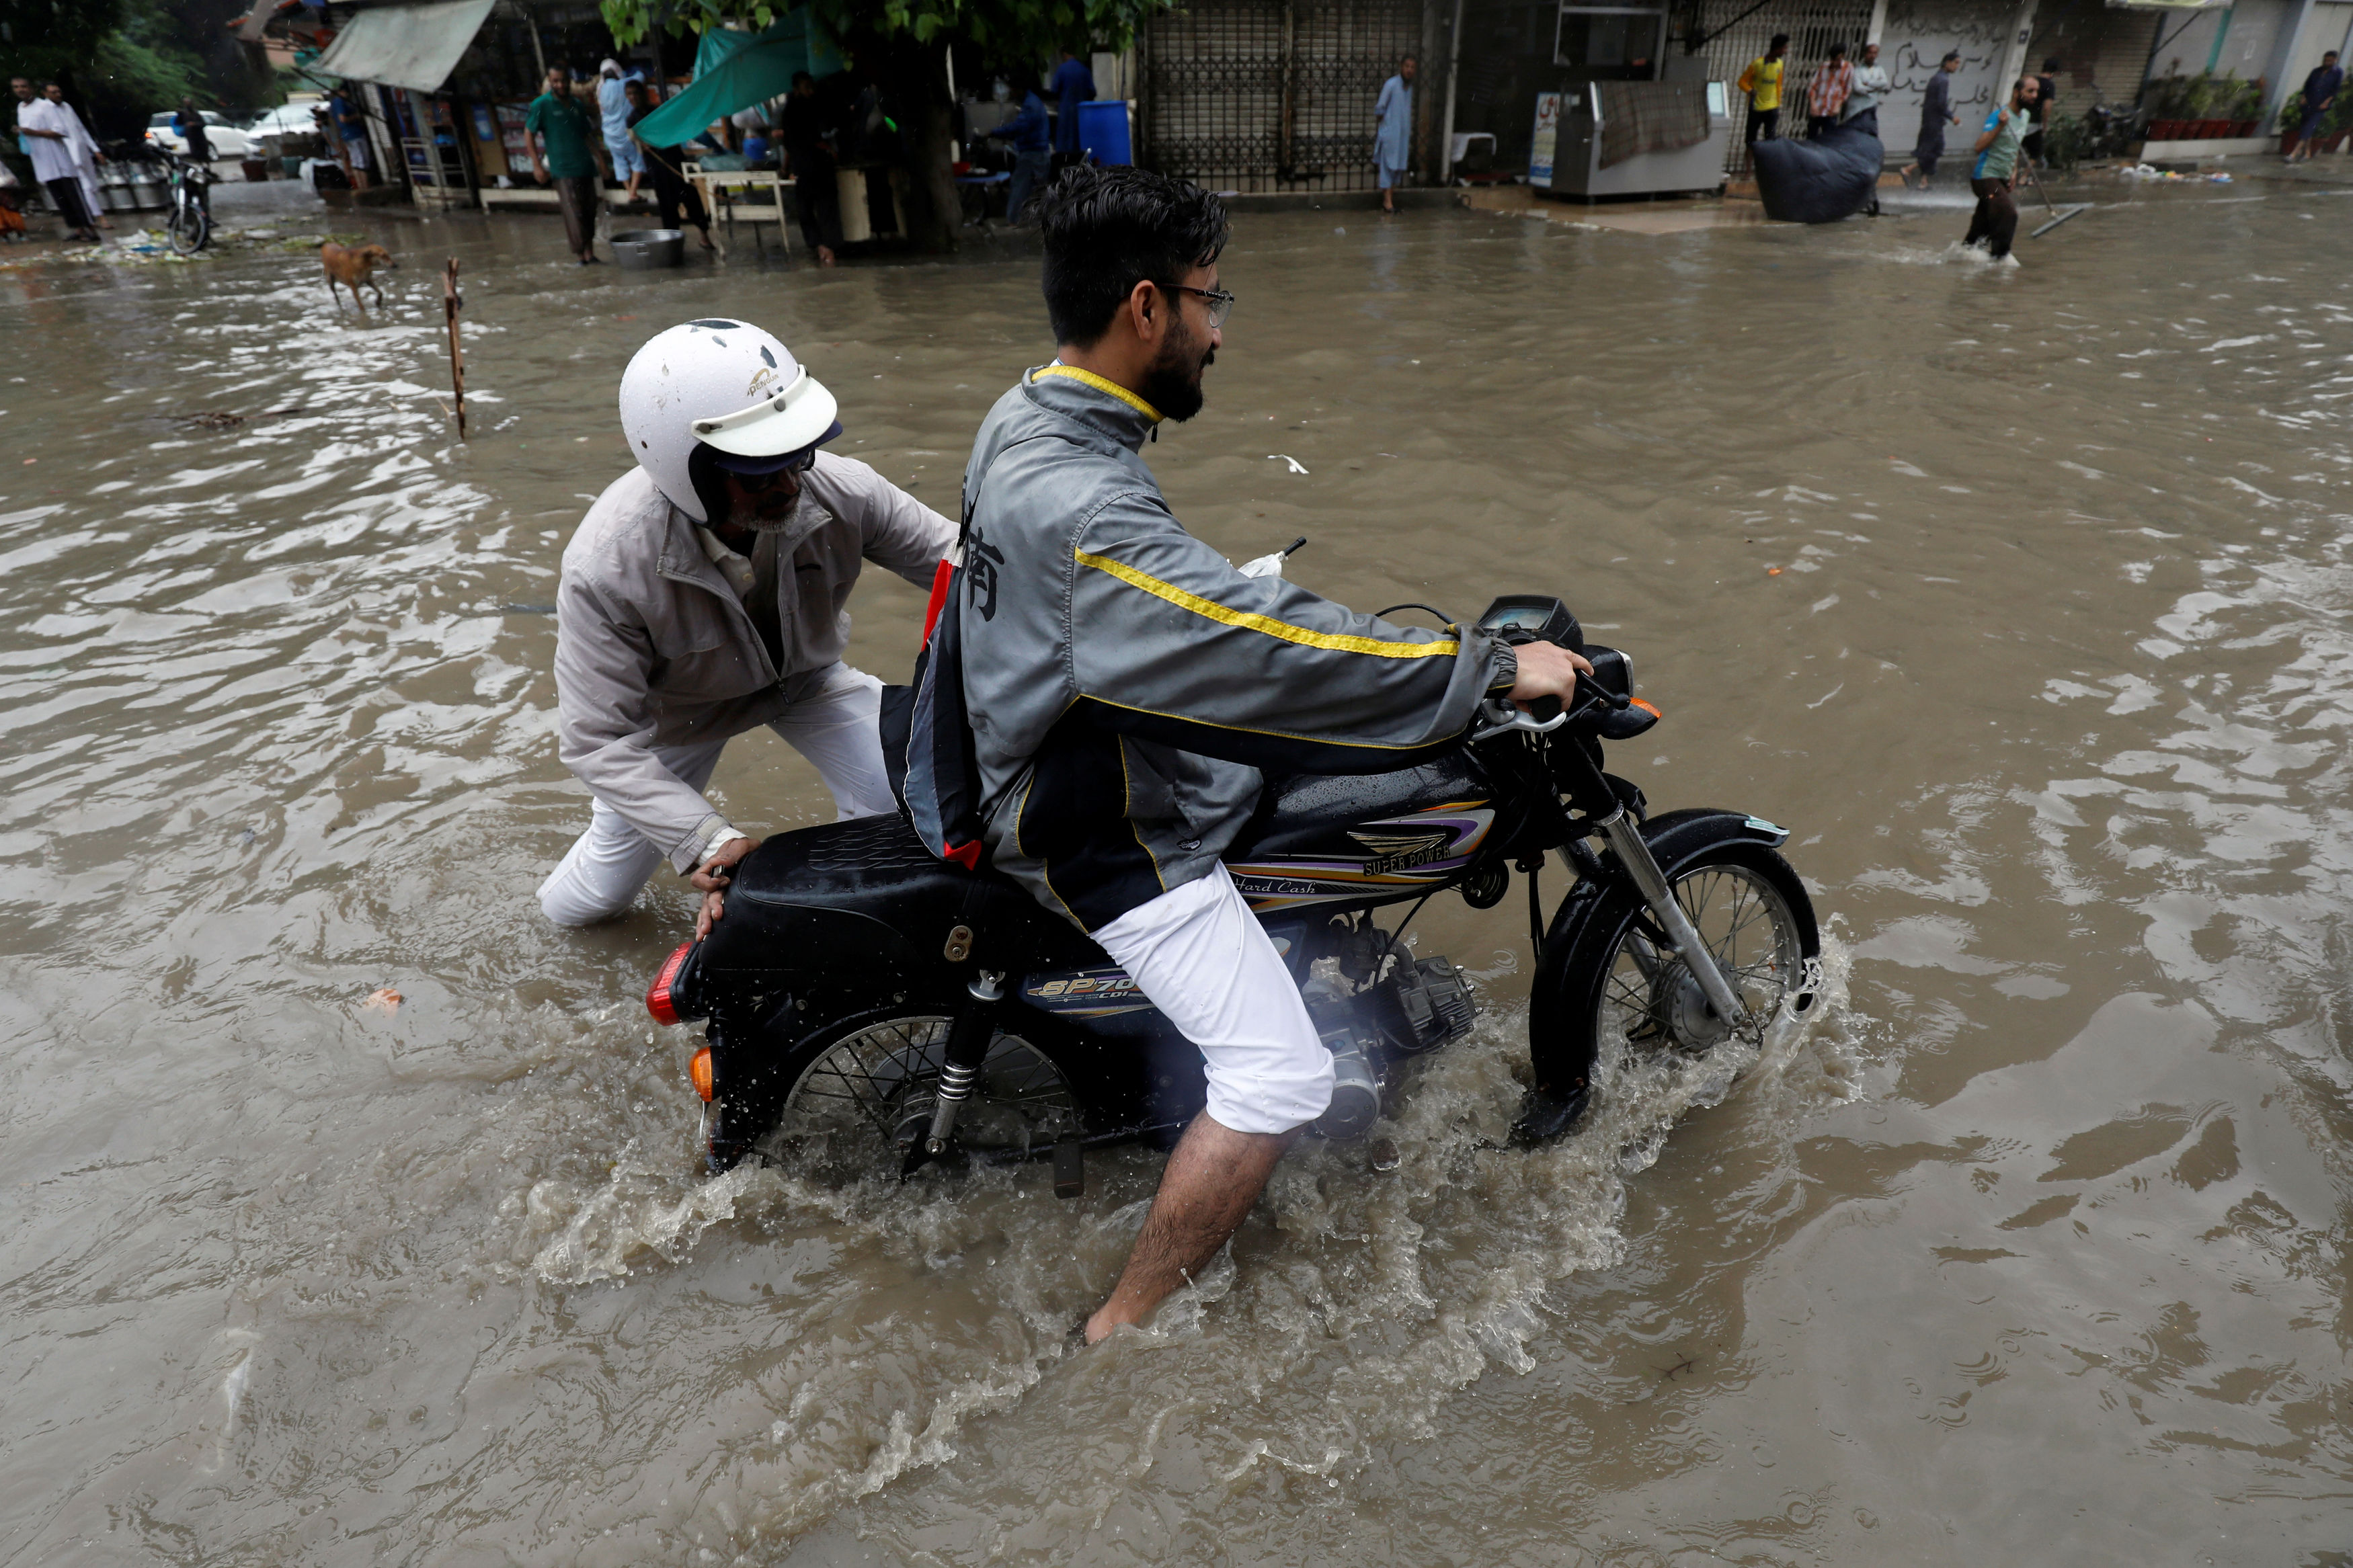 Traffic police officer helps a motorcyclist who is stuck in a ditch amid floodwater after heavy rain in Karachi